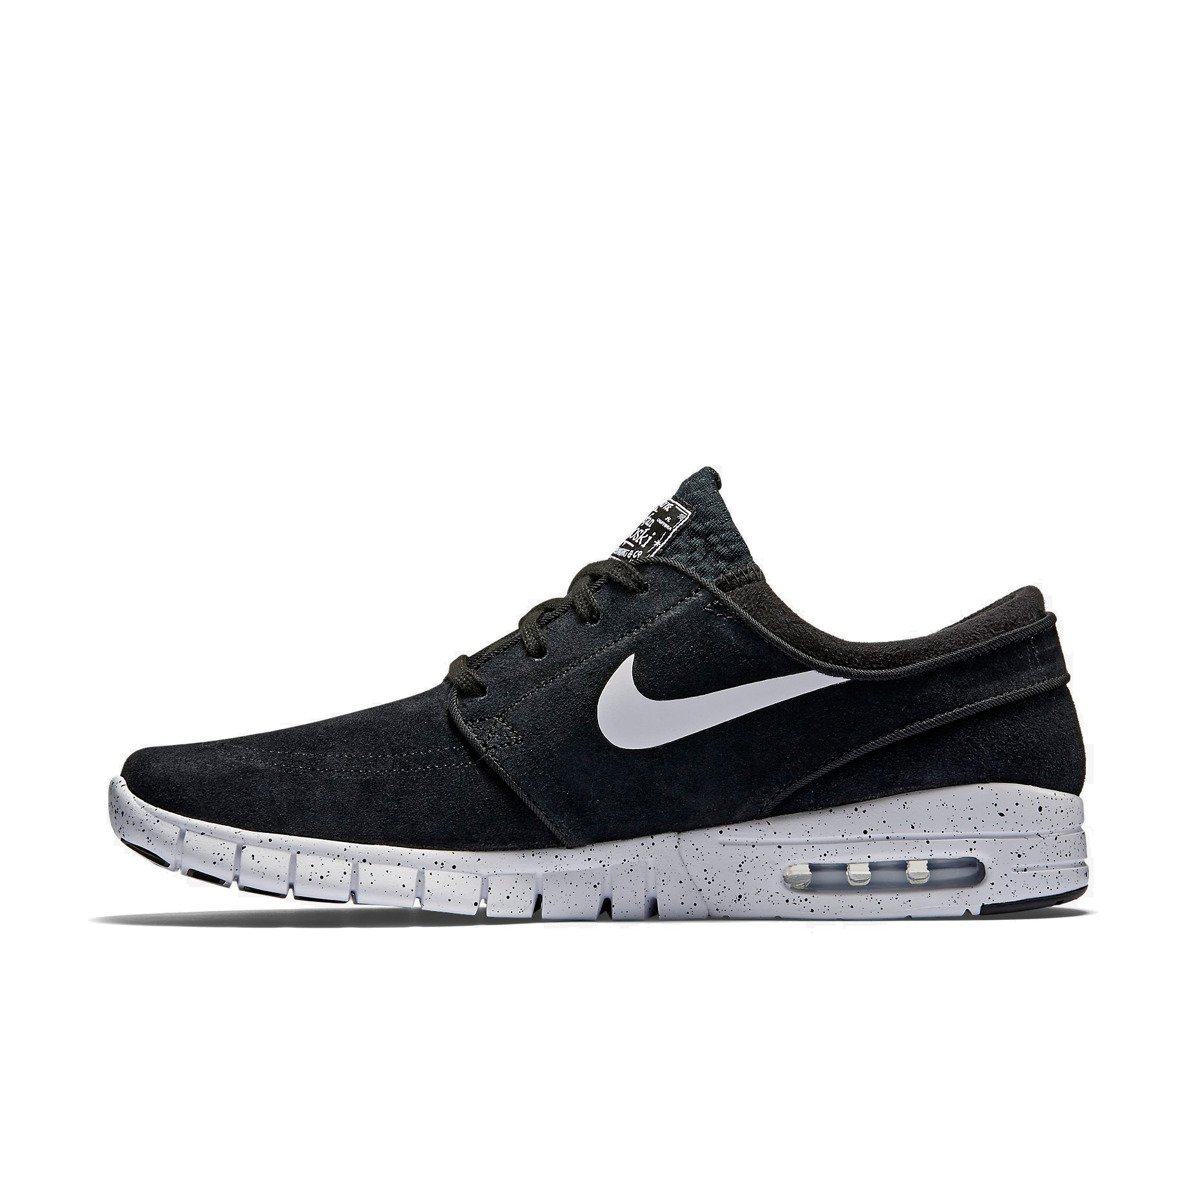 miniramp skateshop buty nike sb stefan janoski max l. Black Bedroom Furniture Sets. Home Design Ideas